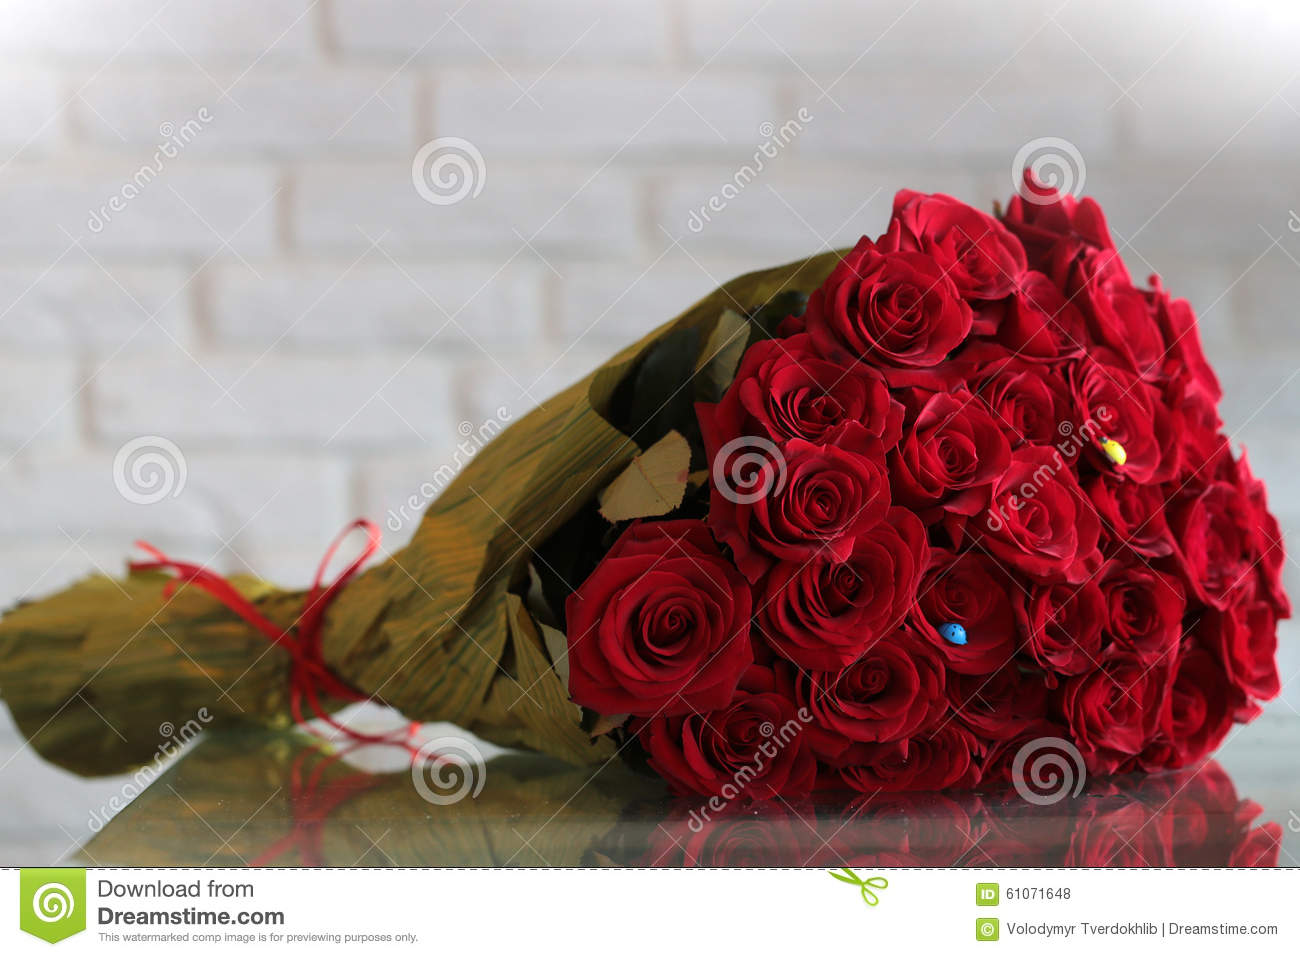 Red rose flowers bouquet stock photo image of brick 61071648 red rose flowers bouquet izmirmasajfo